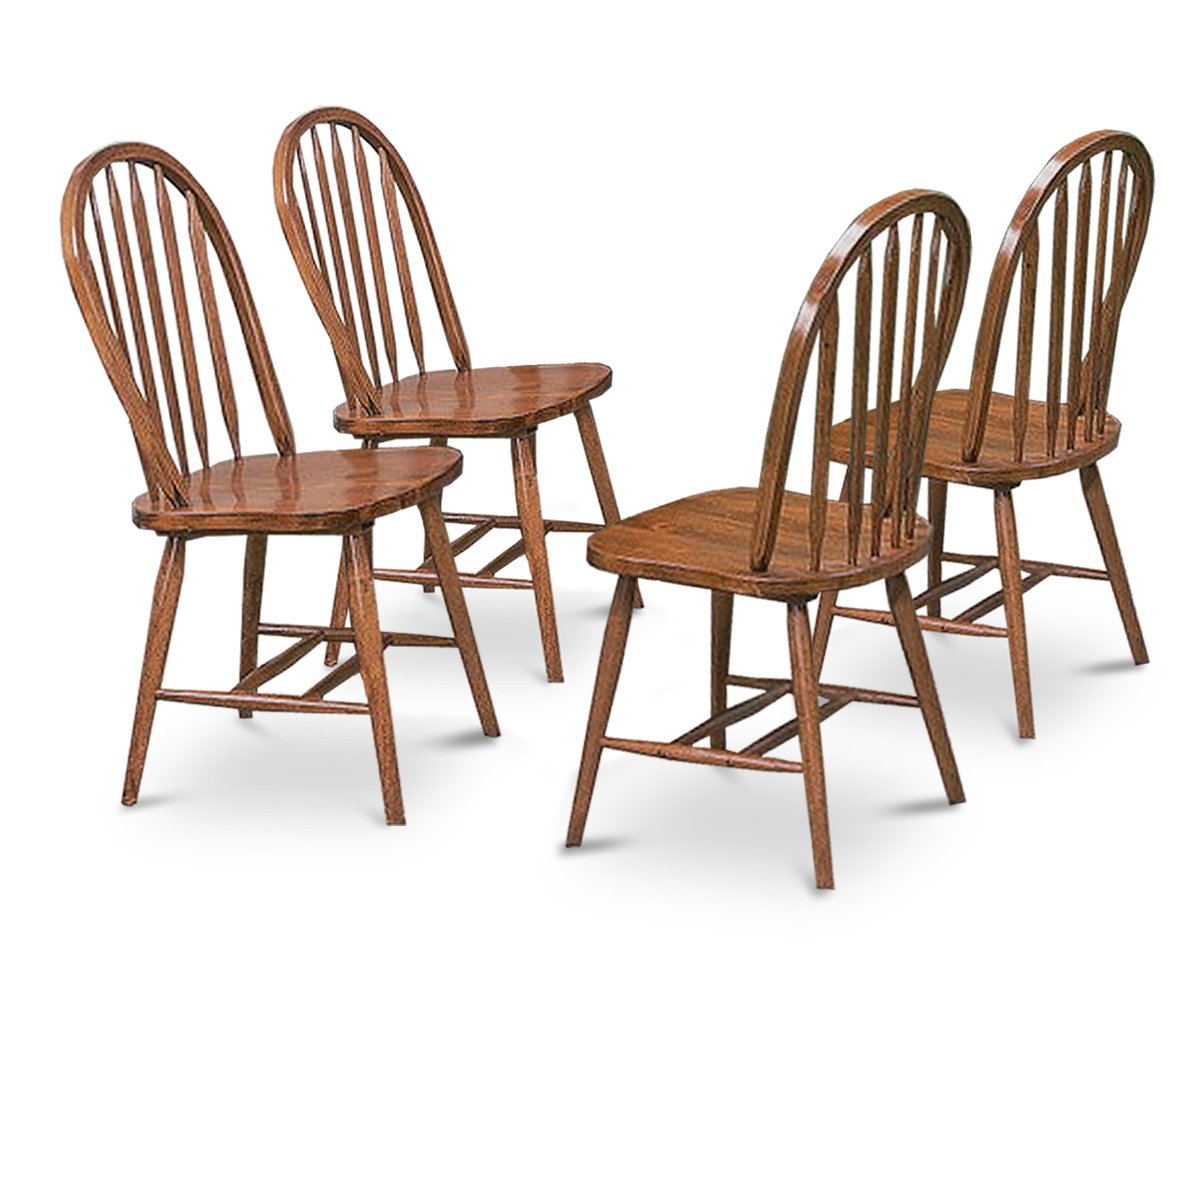 Oak Kitchen Chairs: 4 Dark Oak Stain Kitchen Dining Arrow Back Chairs Set